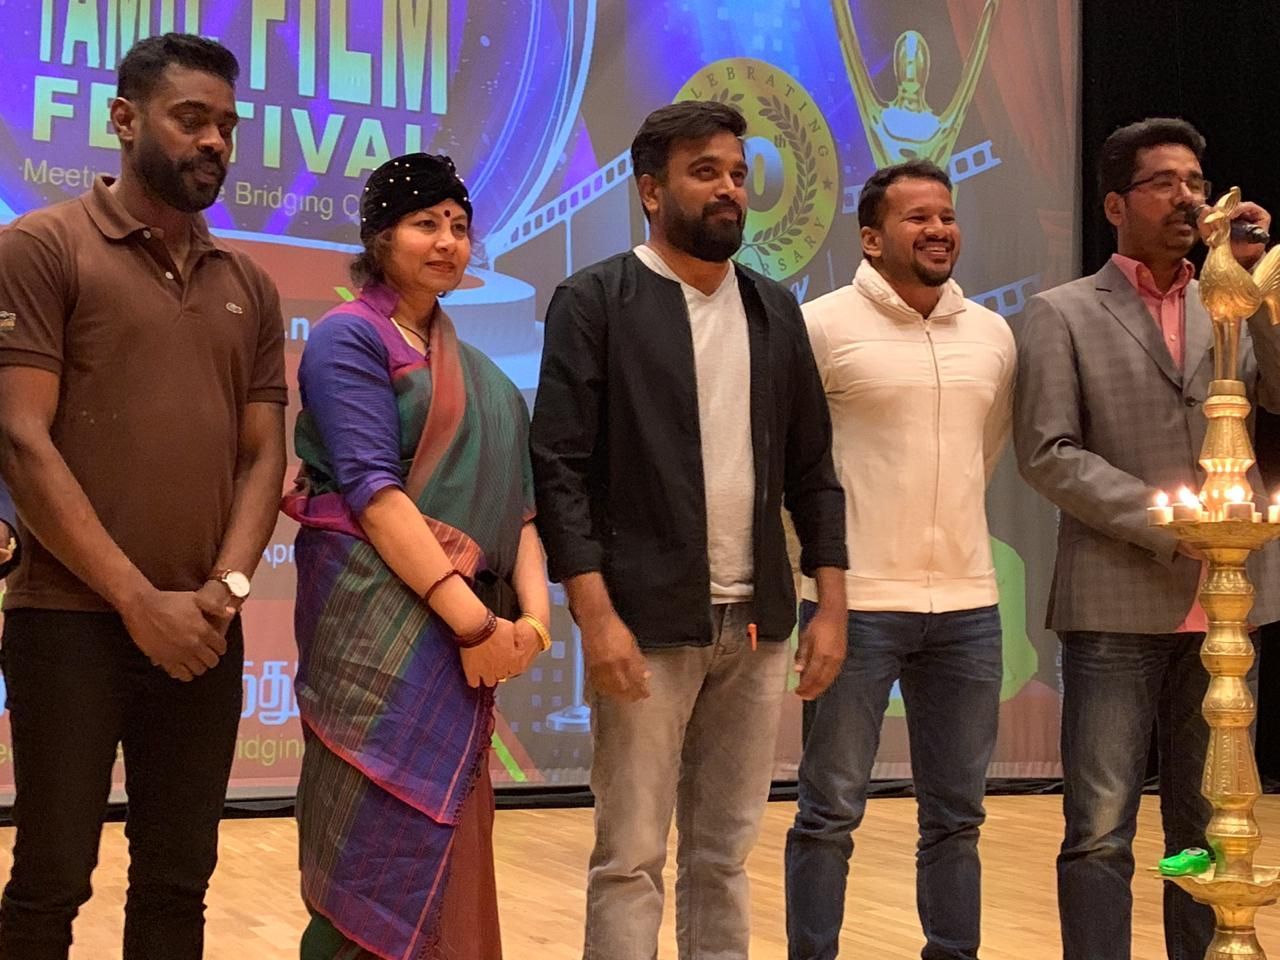 Norway Tamil Film Festival 2019 Launched Director Sasi Kumar Pics Tamil Gallery